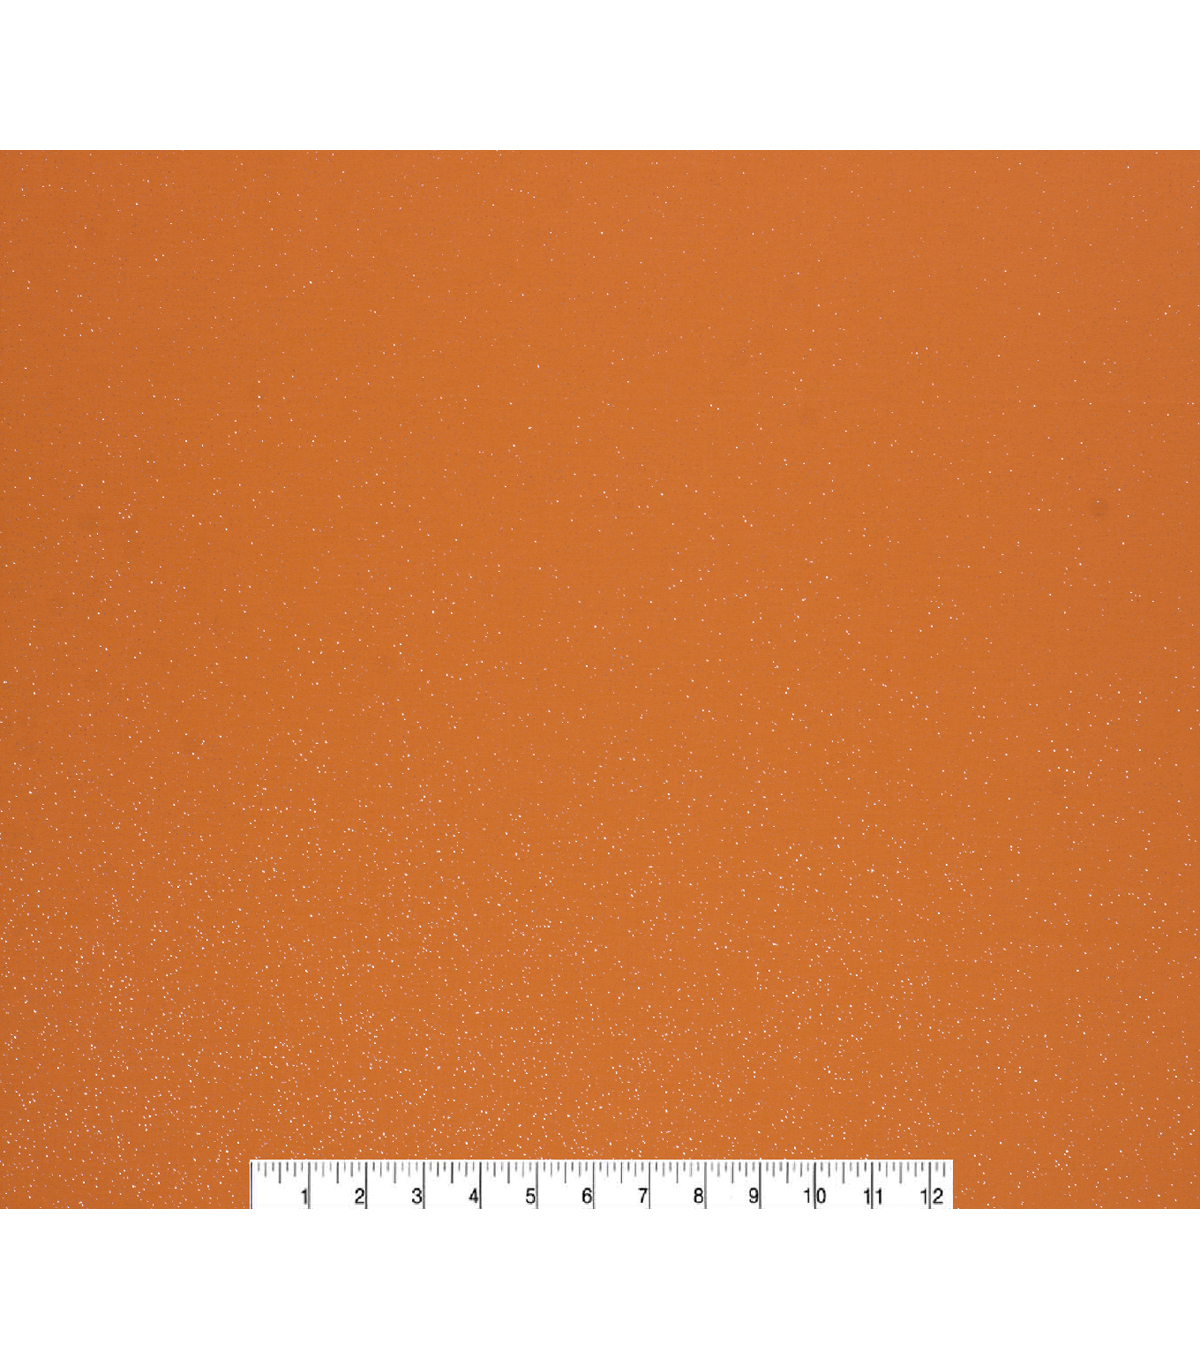 Keepsake Calico Cotton Fabric-Silver Glitter on Orange